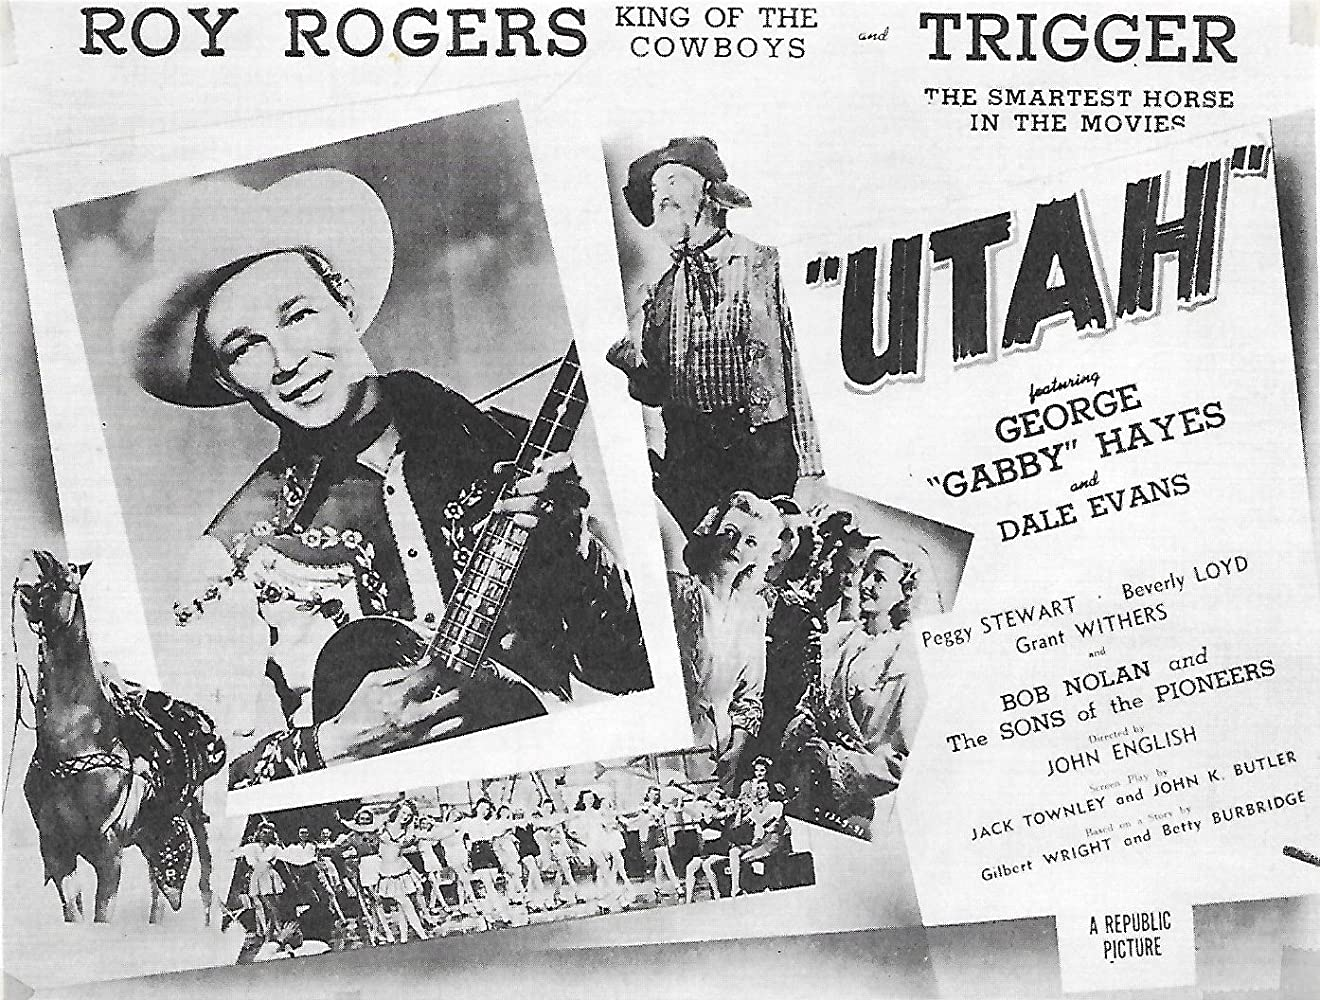 Roy Rogers, Dale Evans, George 'Gabby' Hayes, and Peggy Stewart in Utah (1945)